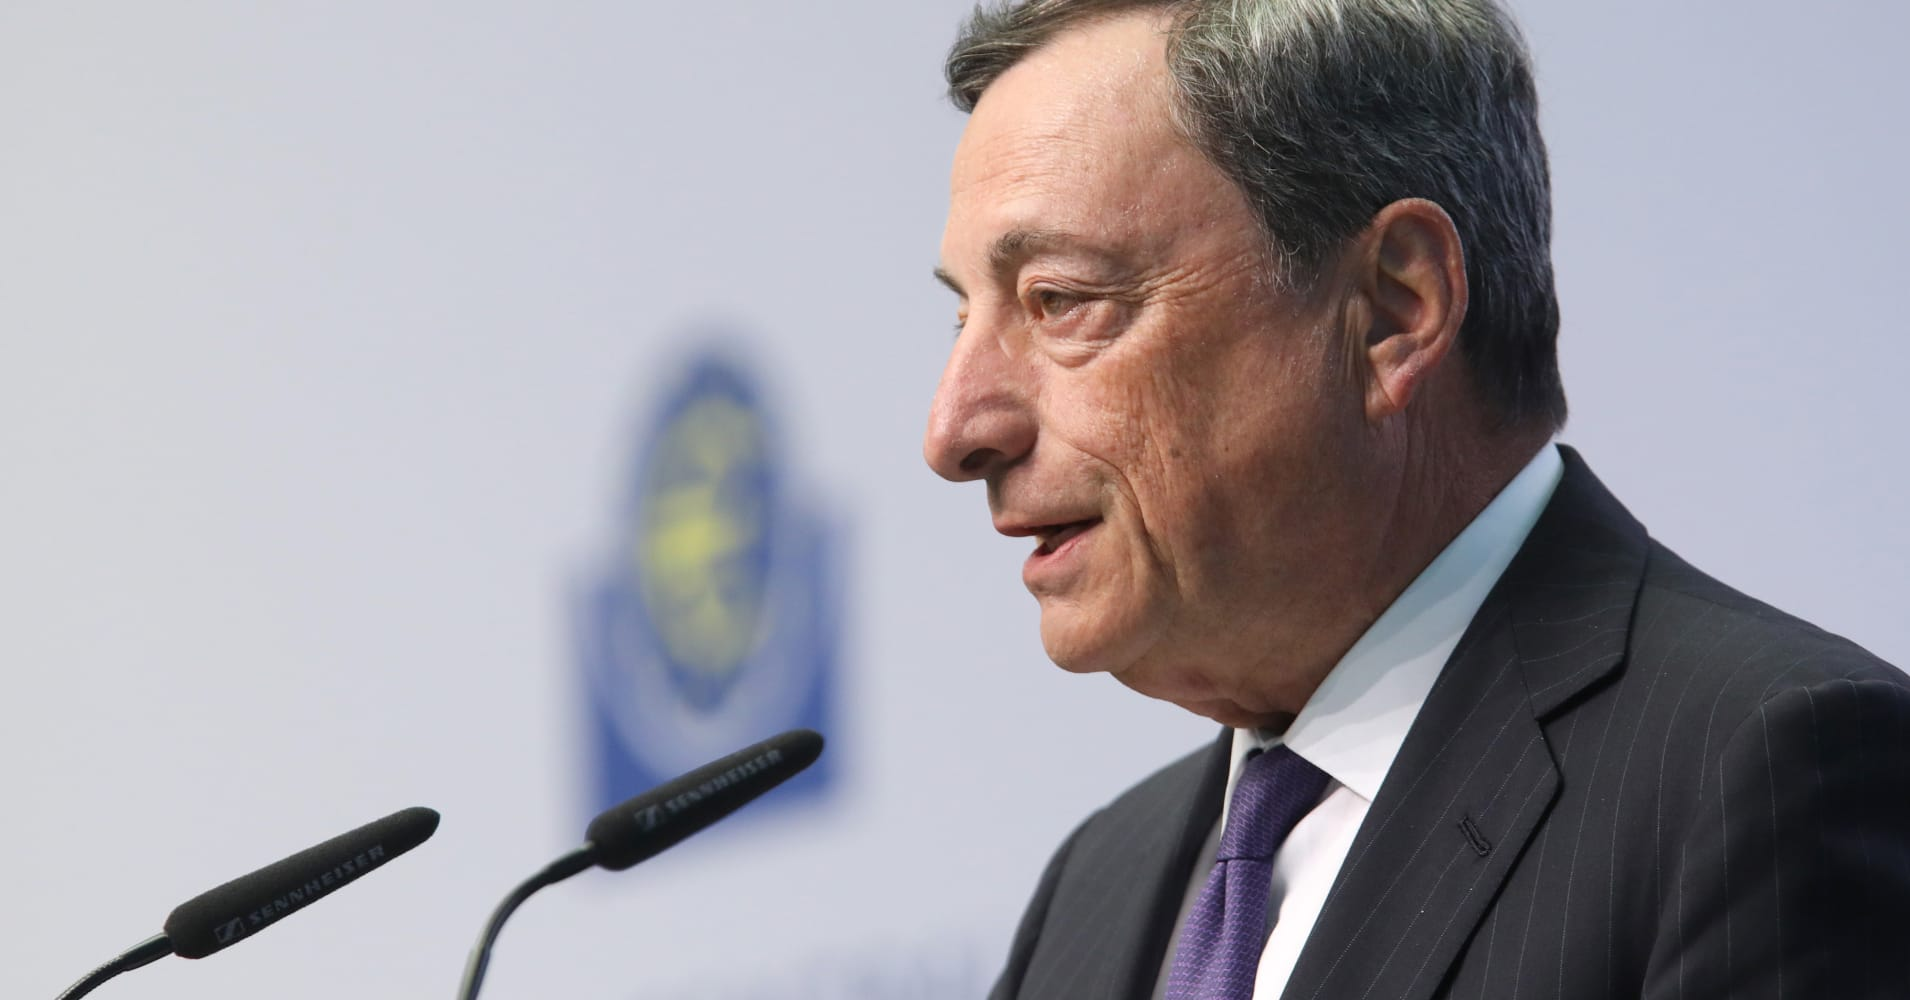 Watch: ECB chief Mario Draghi discusses easing, the euro and politics